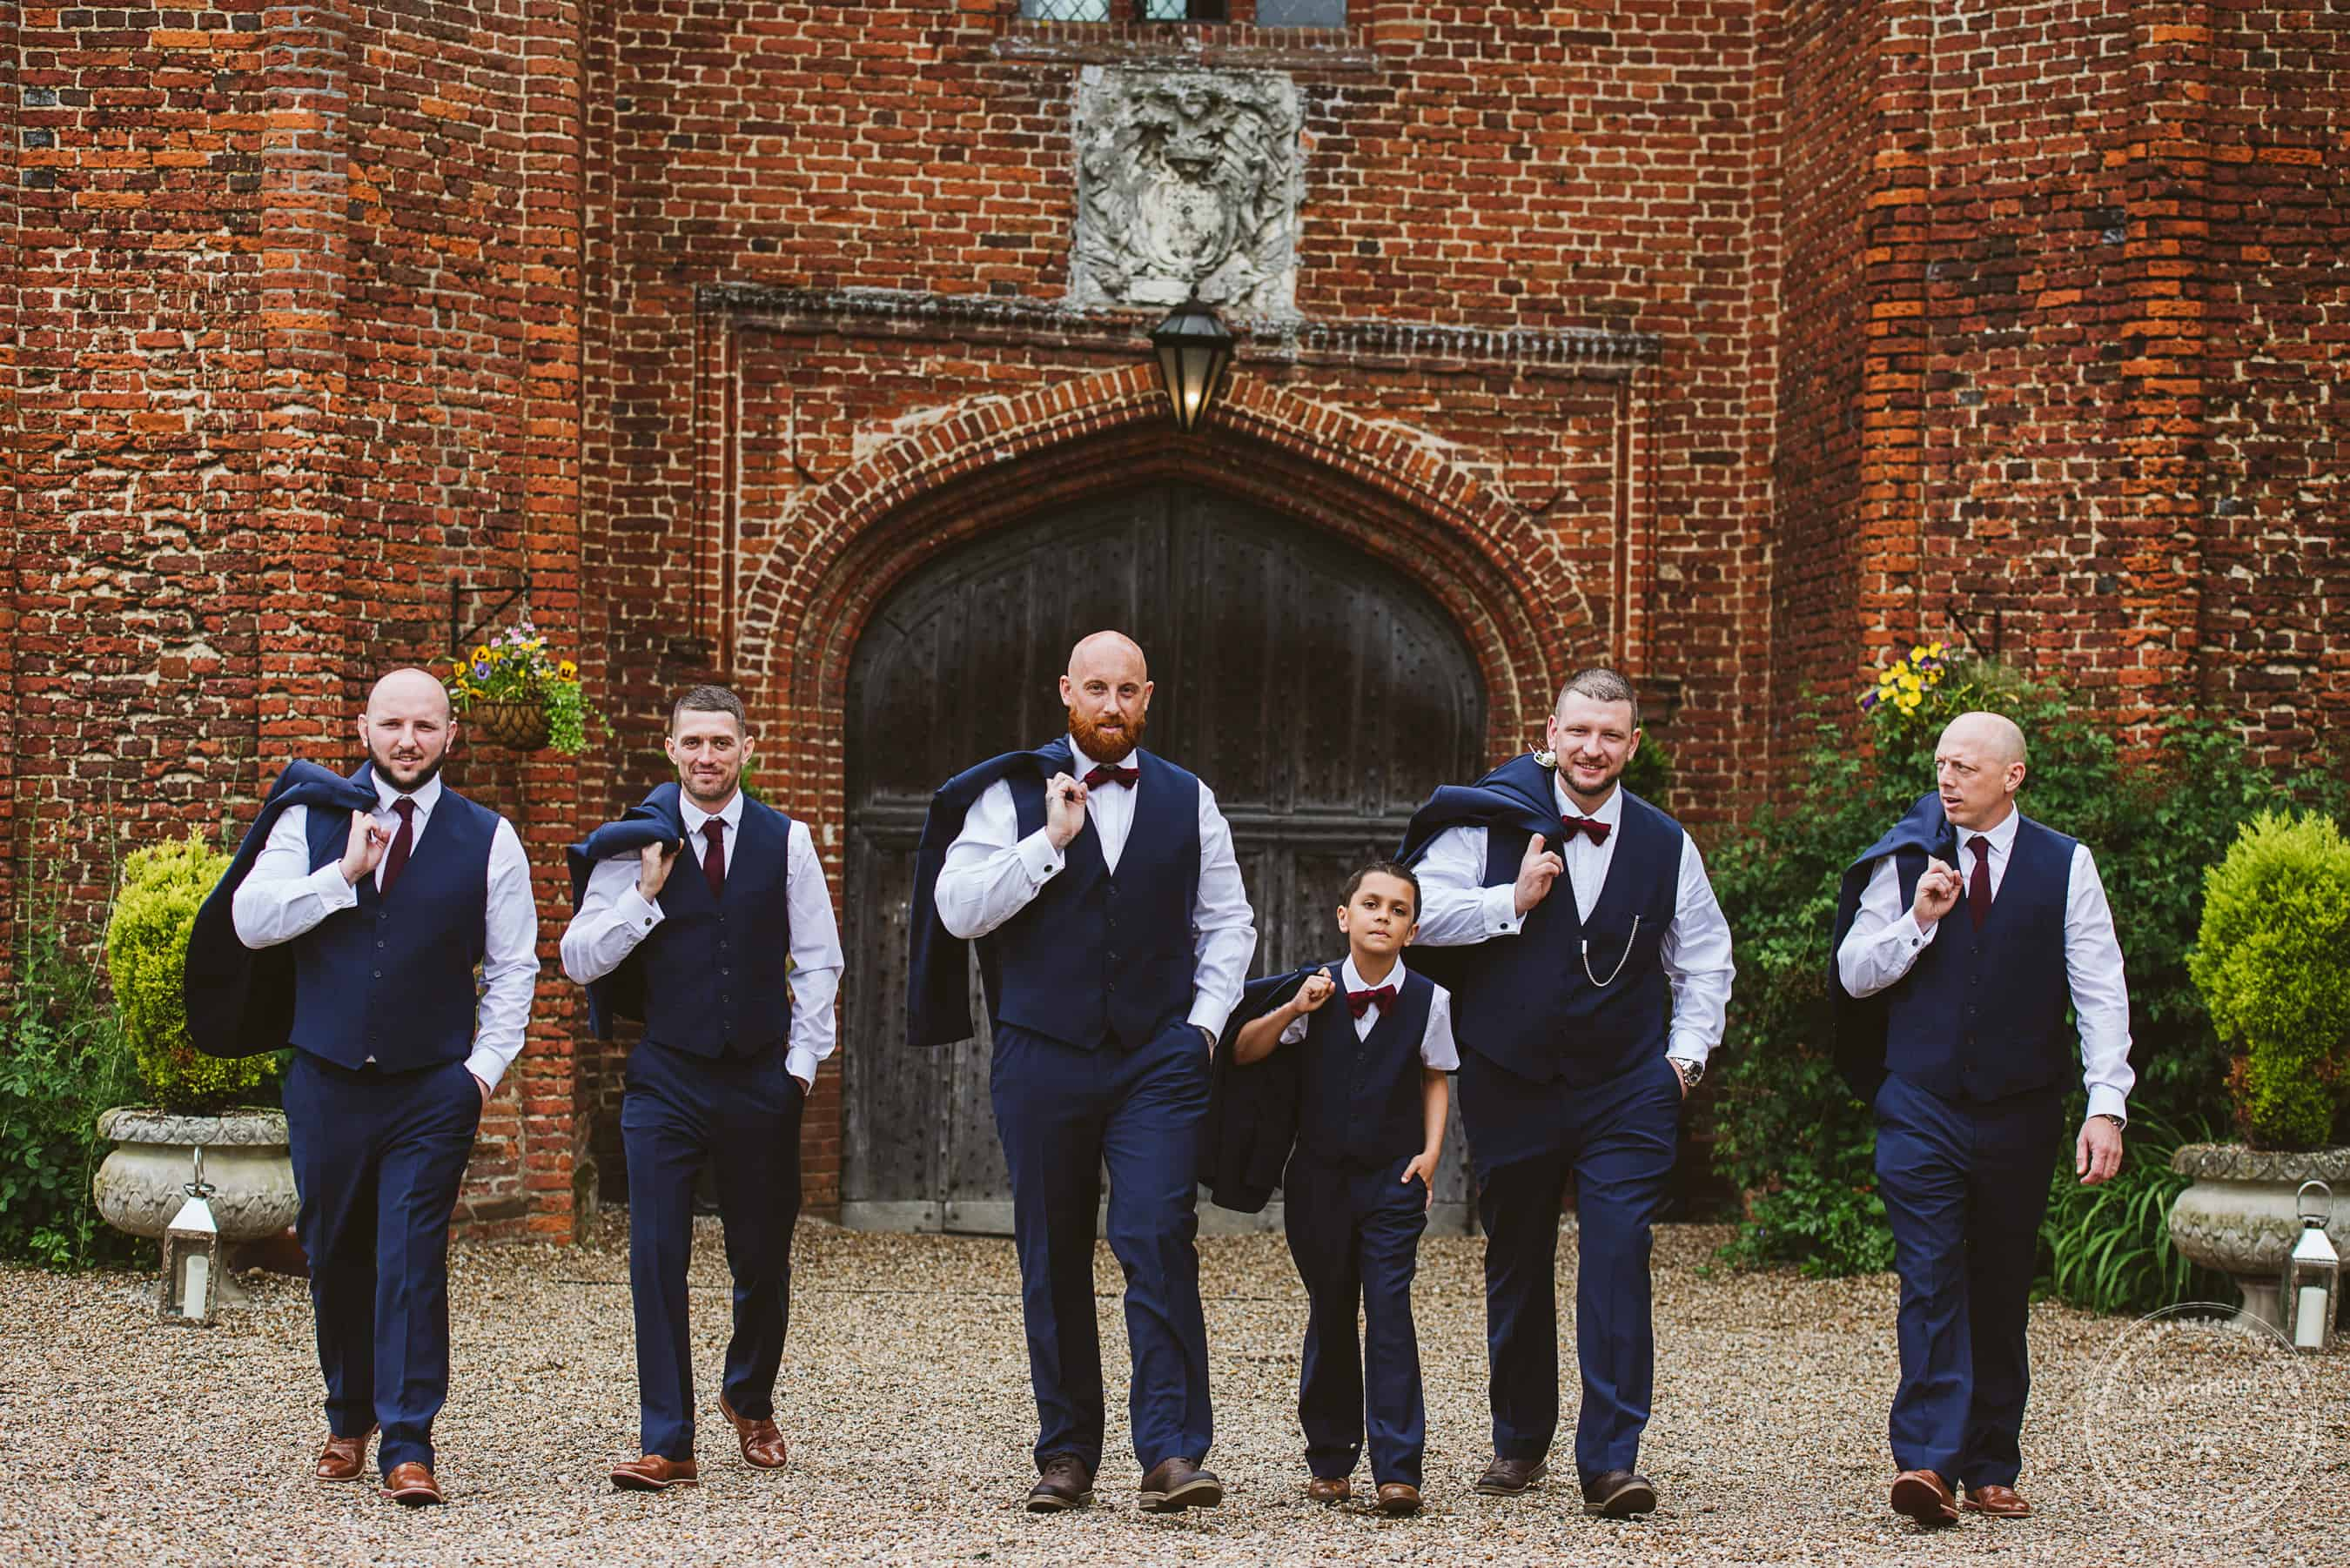 290518 Leez Priory Wedding Photography Lavenham Photographic 036